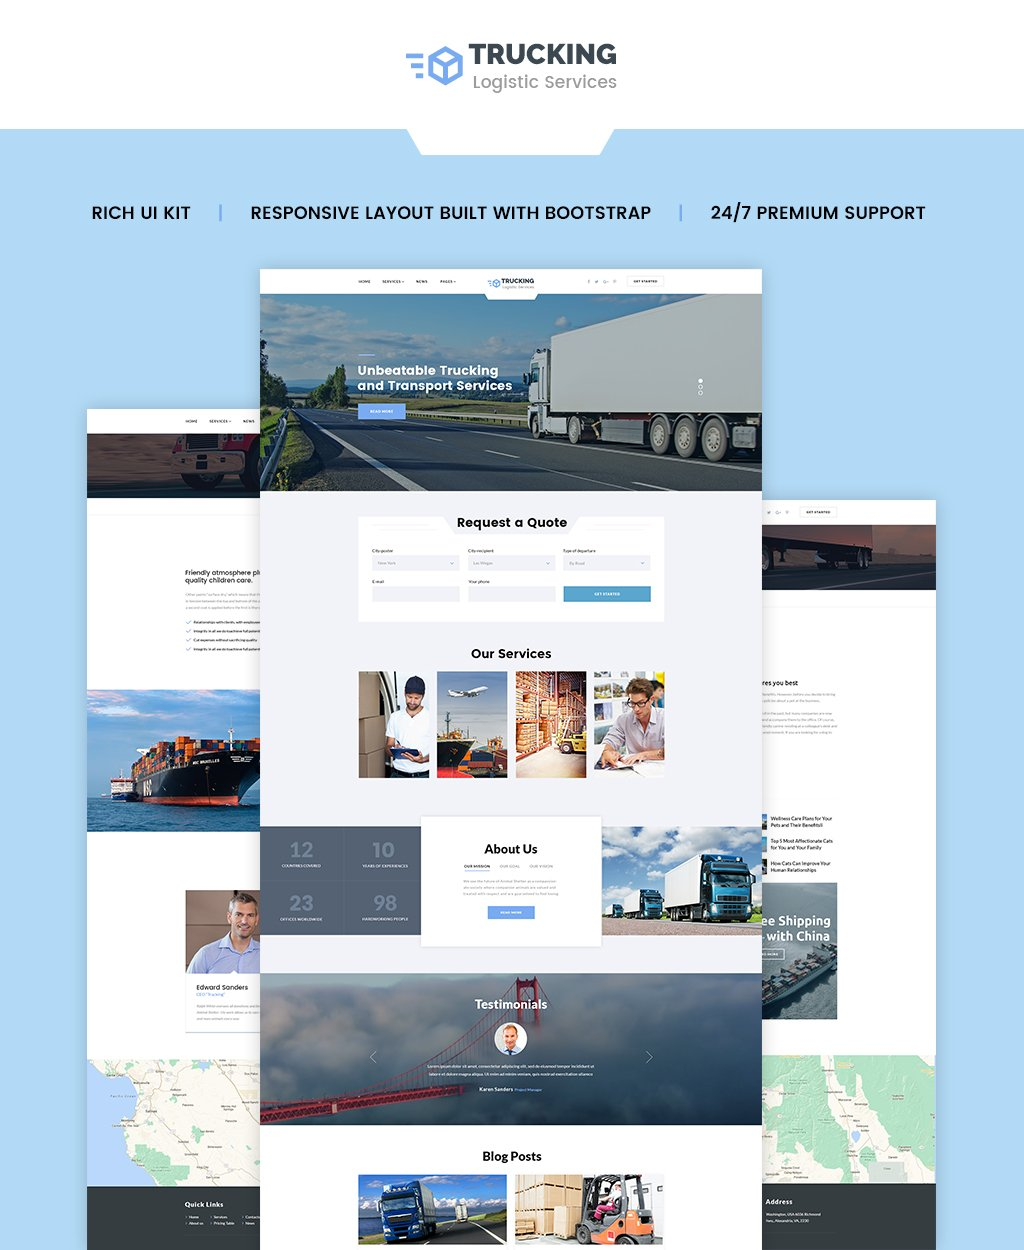 Trucking - Logistics & Transportation Services HTML Website Template